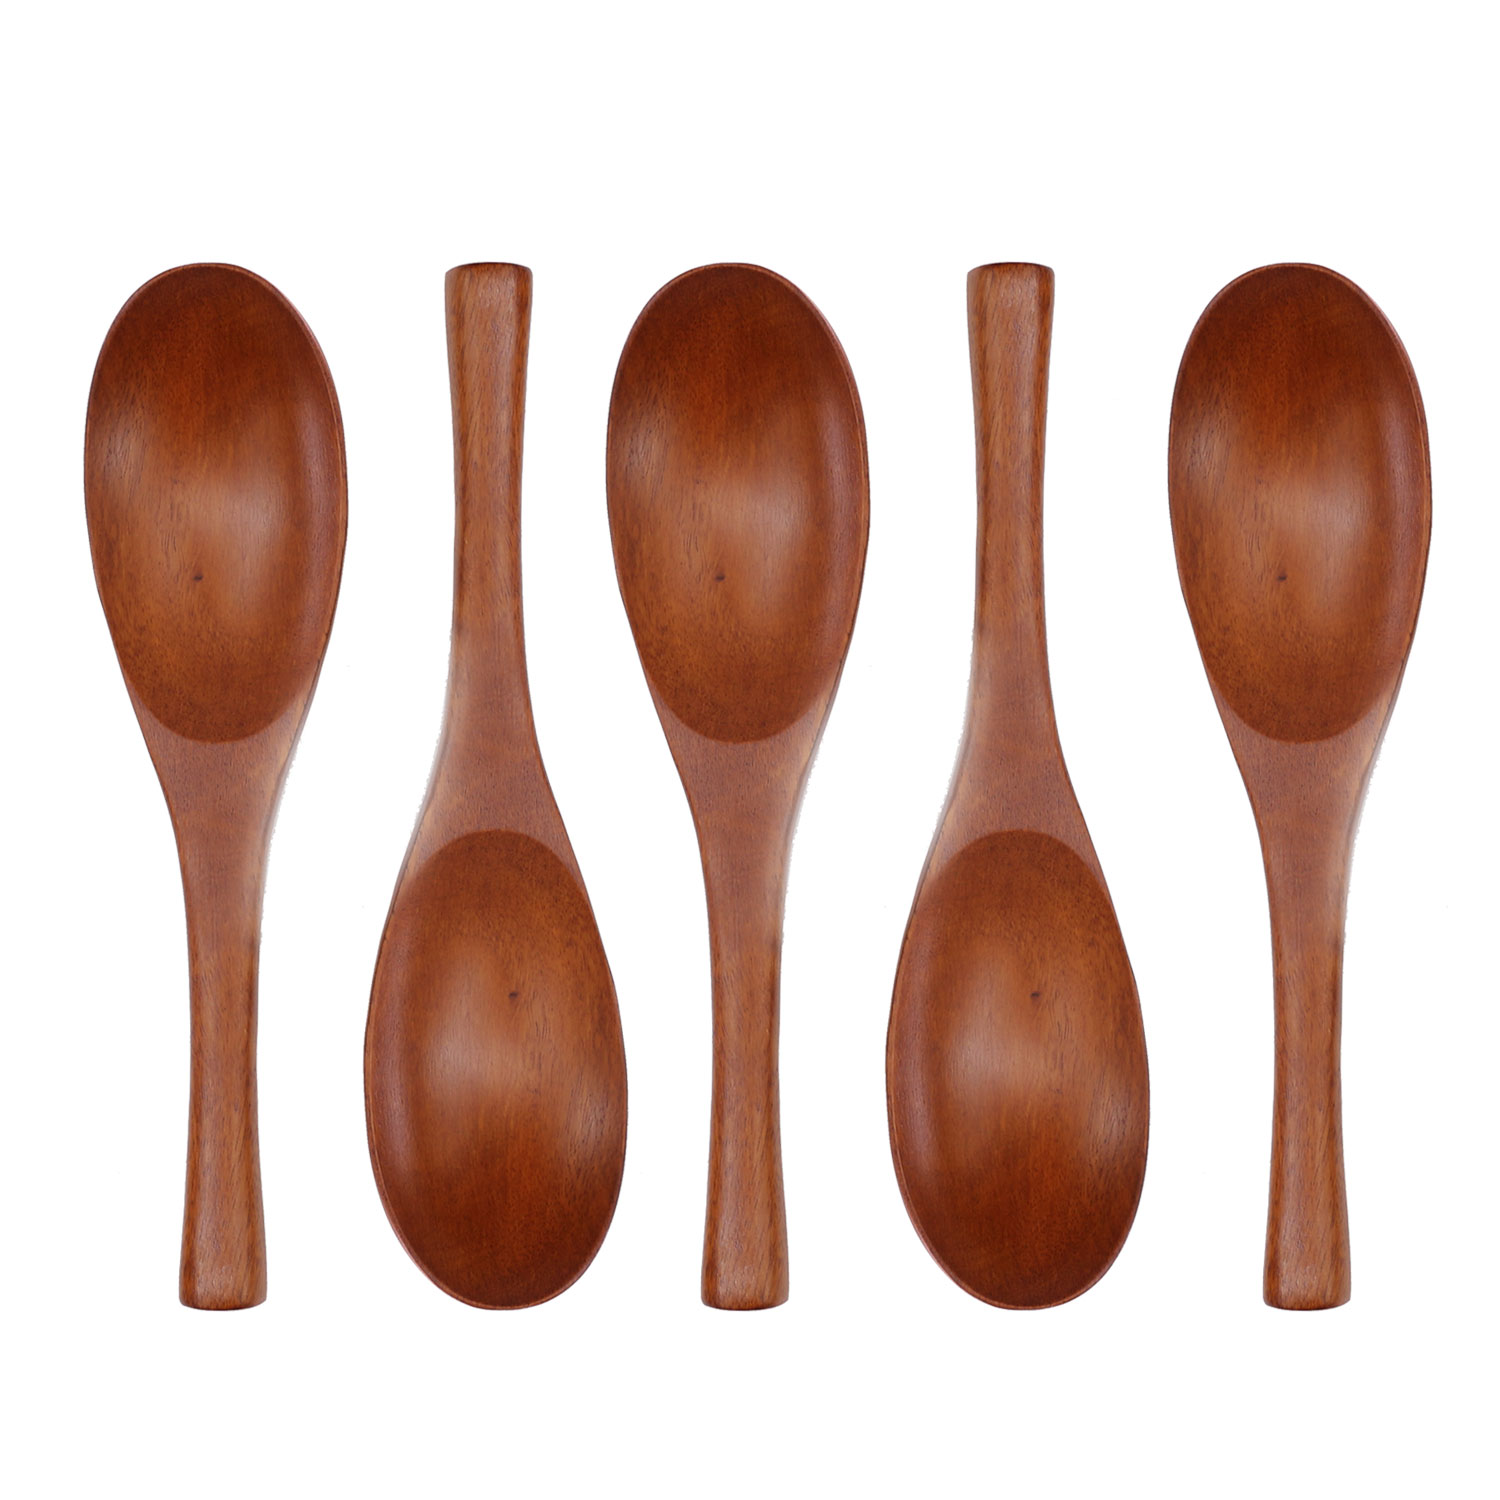 Details about Set of 5 Handmade Natural Jujube Wood Spoon for Ramen Udon  Soup